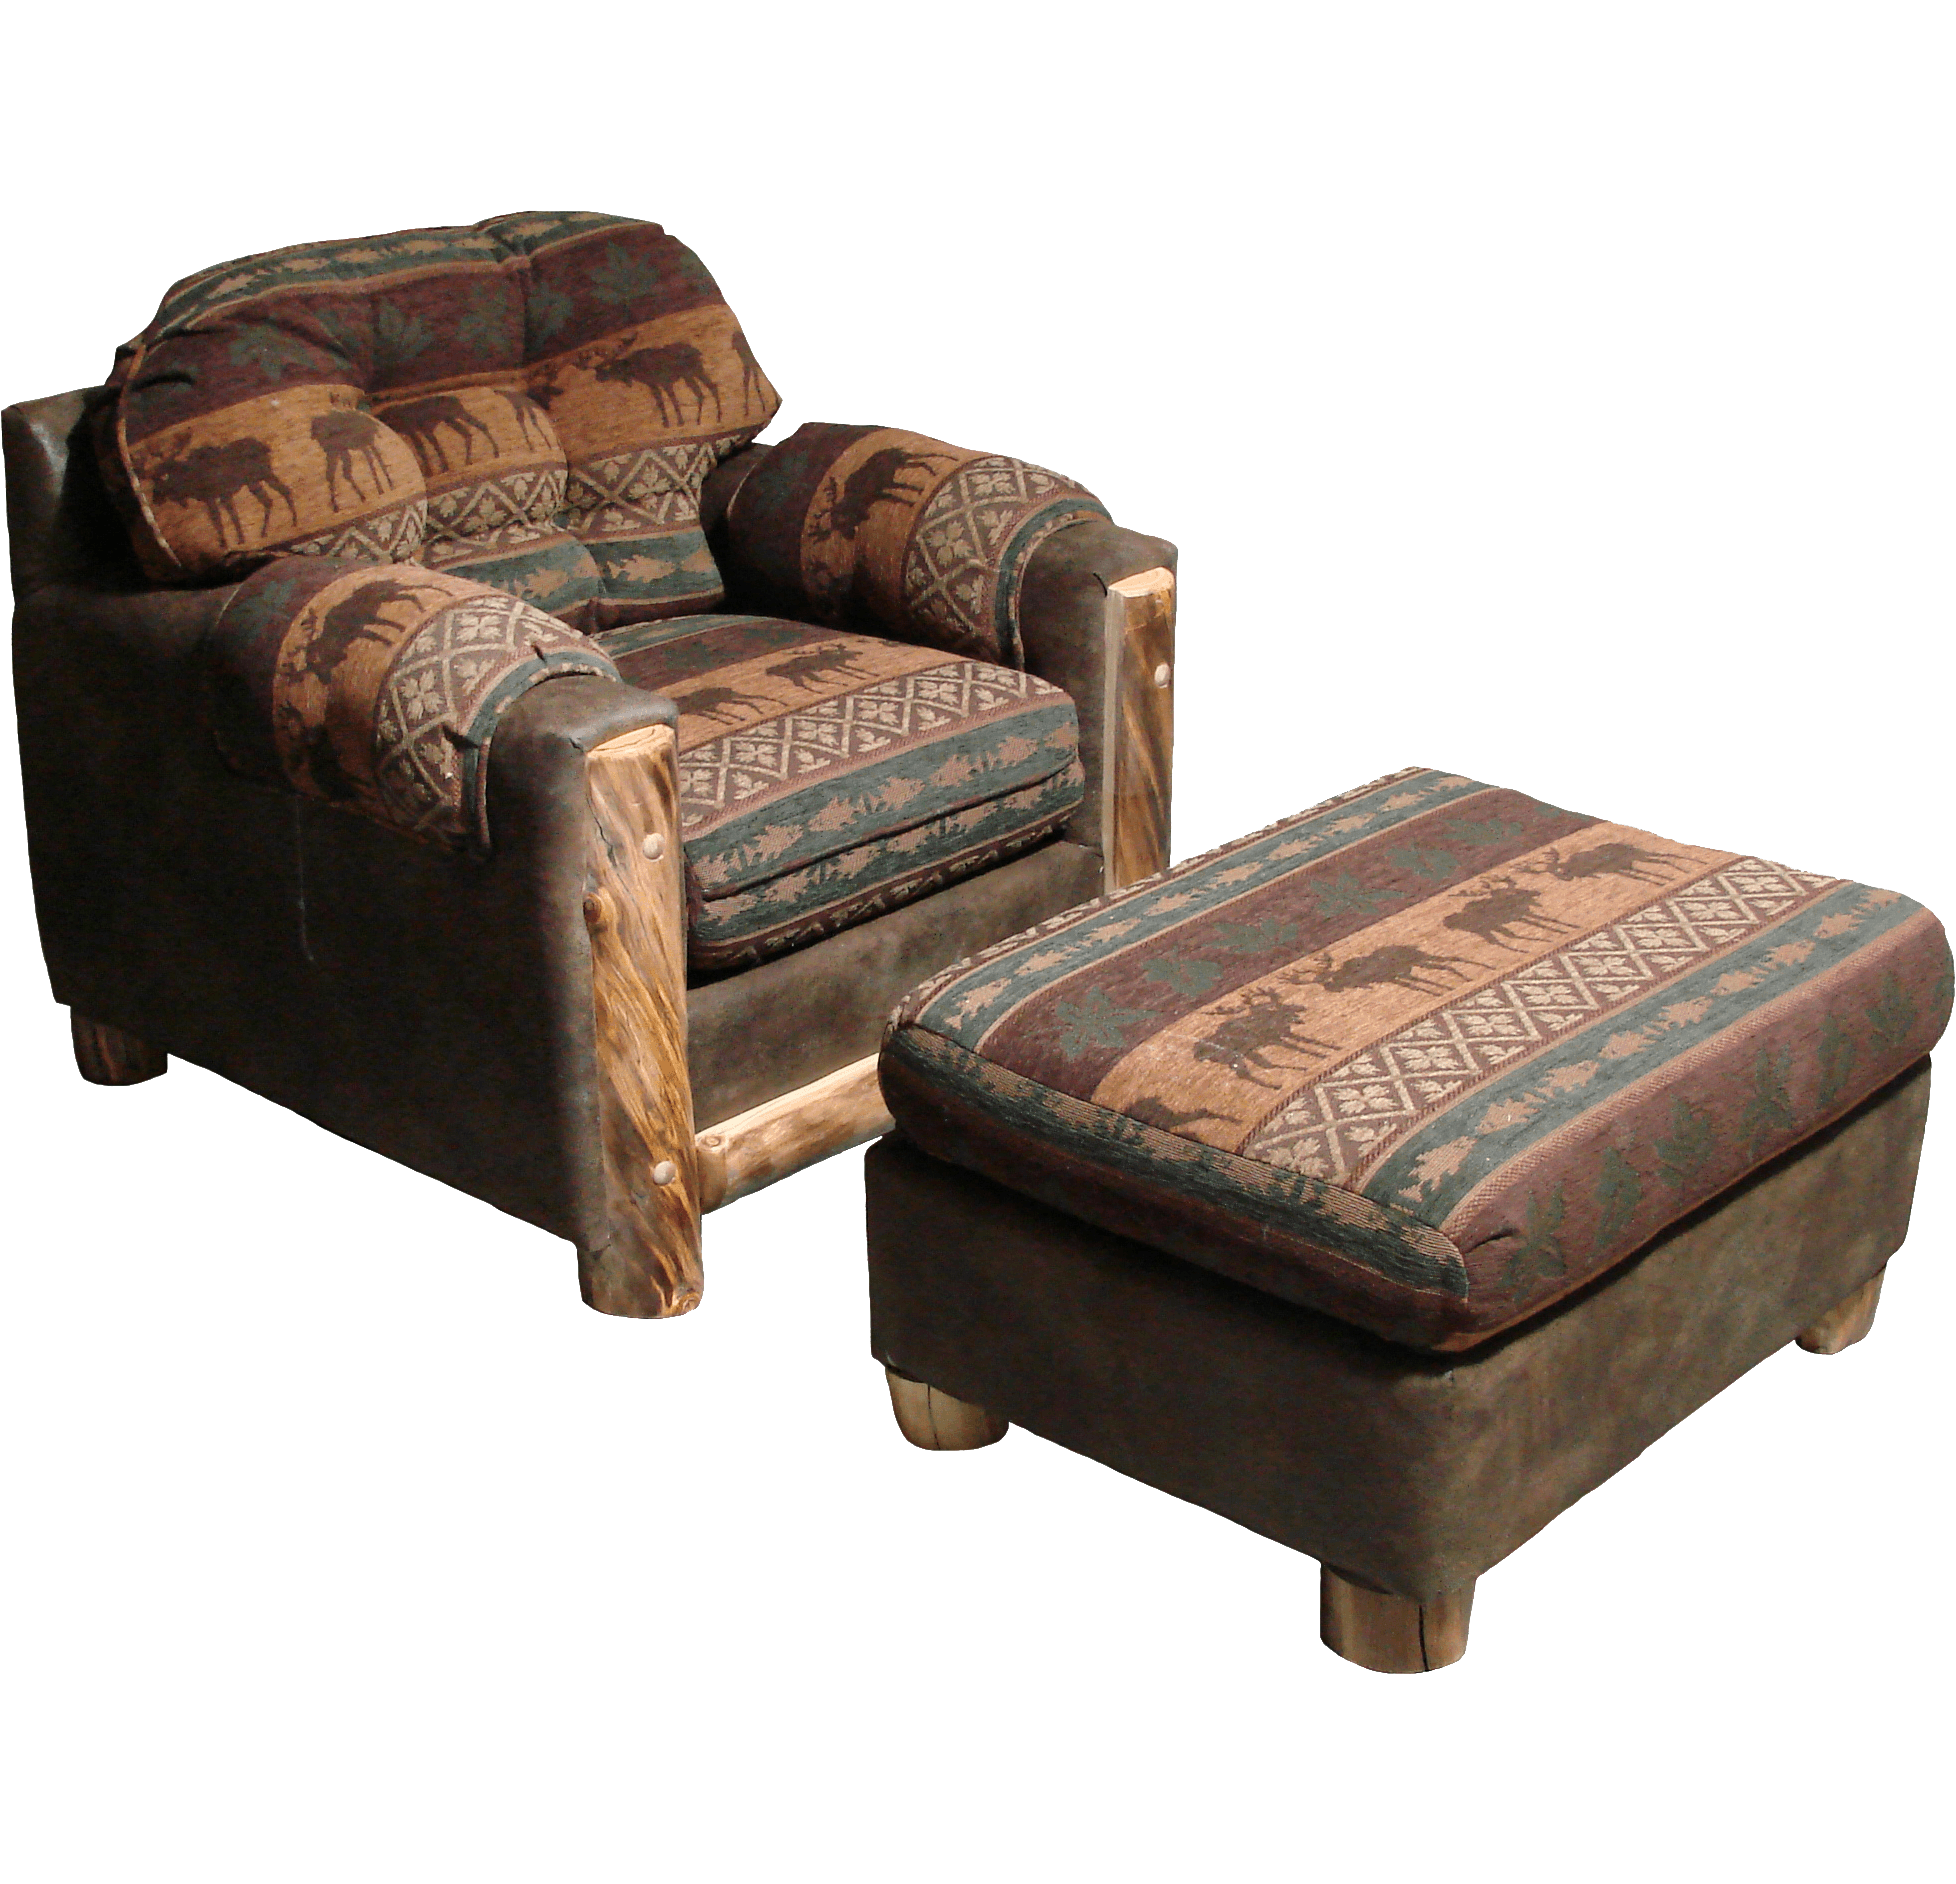 Aspen Log Trimmed Sofa Rustic Log Furniture Of Utah